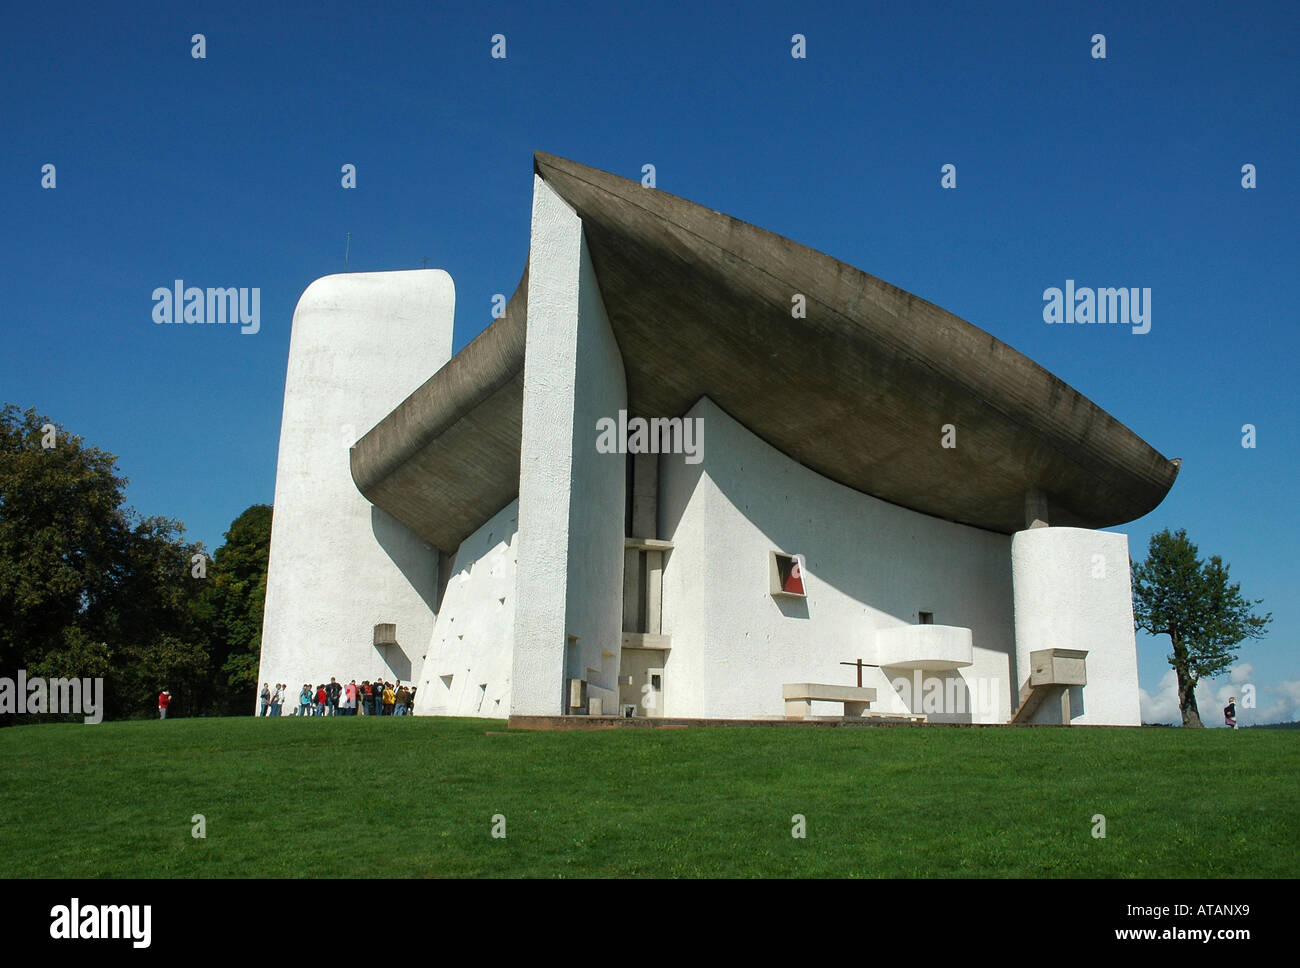 Schoolkids visit the Notre-Dame-du-Haut chapel by architect Le Corbusier on a hillltop above Ronchamp in France's Jura region - Stock Image